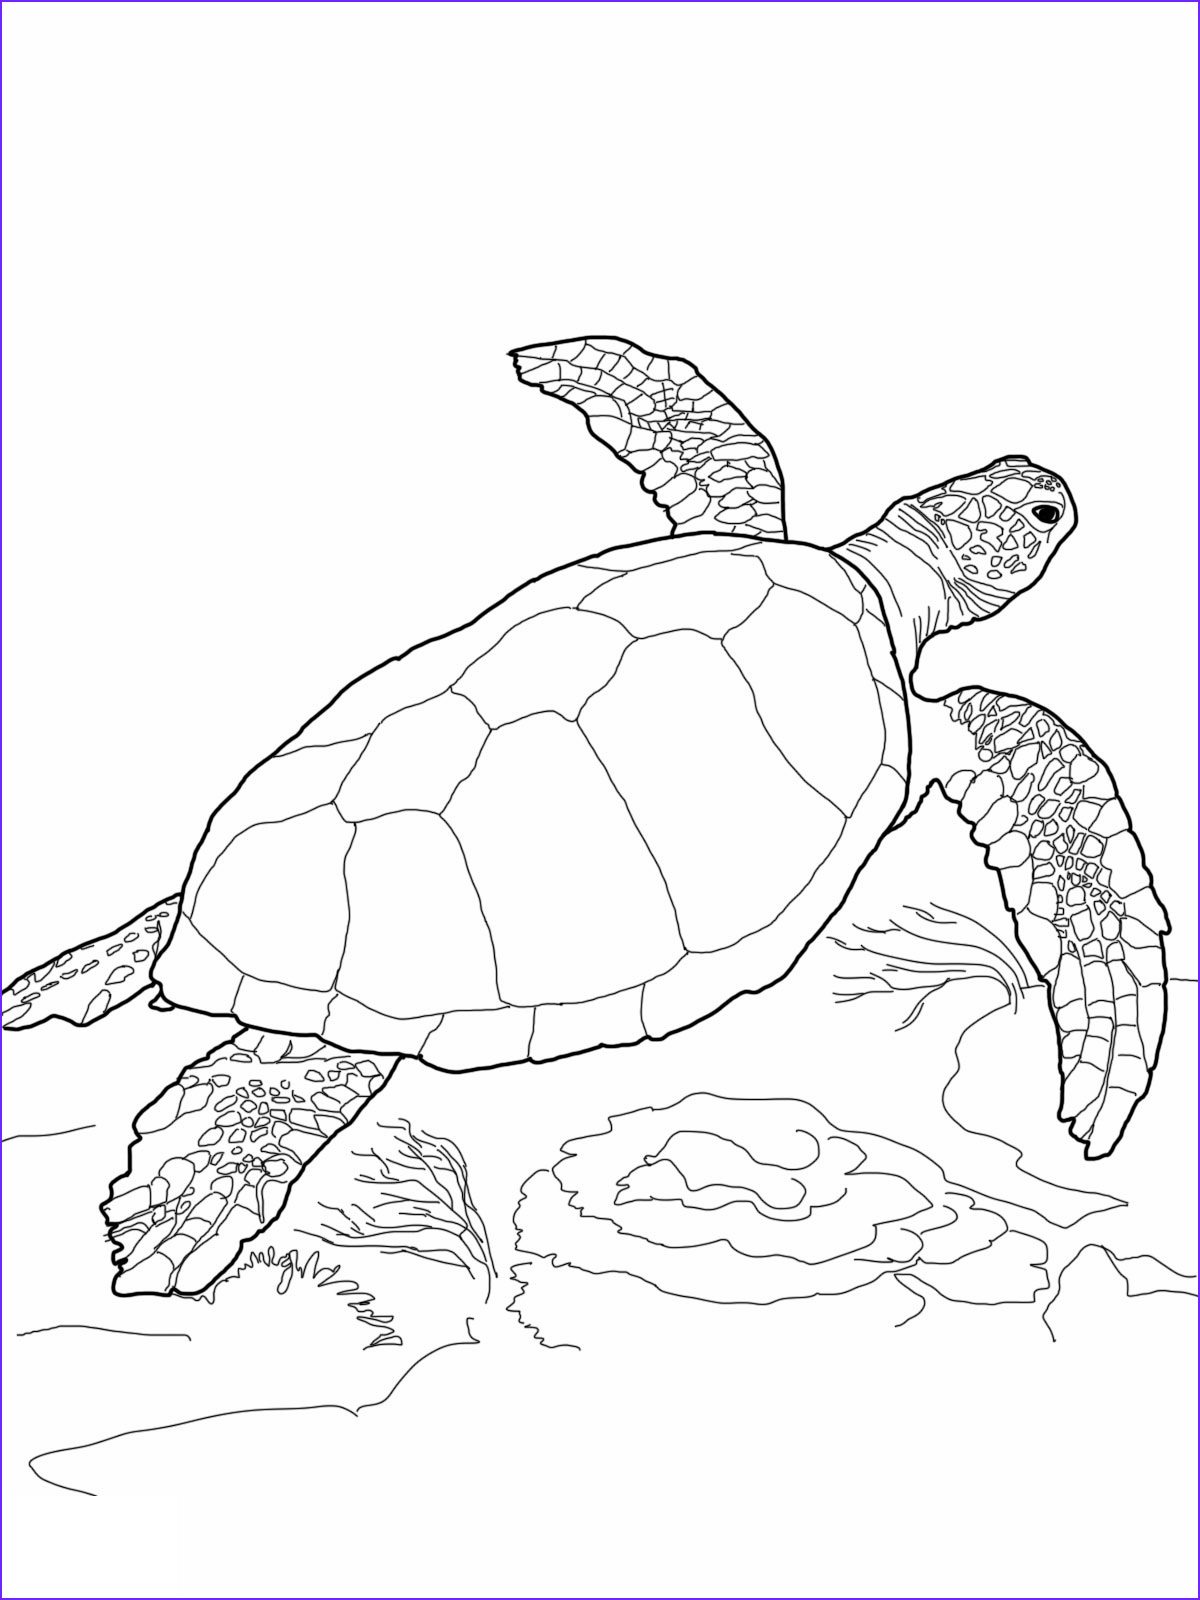 Coloring Page Turtle Awesome Photography Free Printable Turtle Coloring Pages for Kids